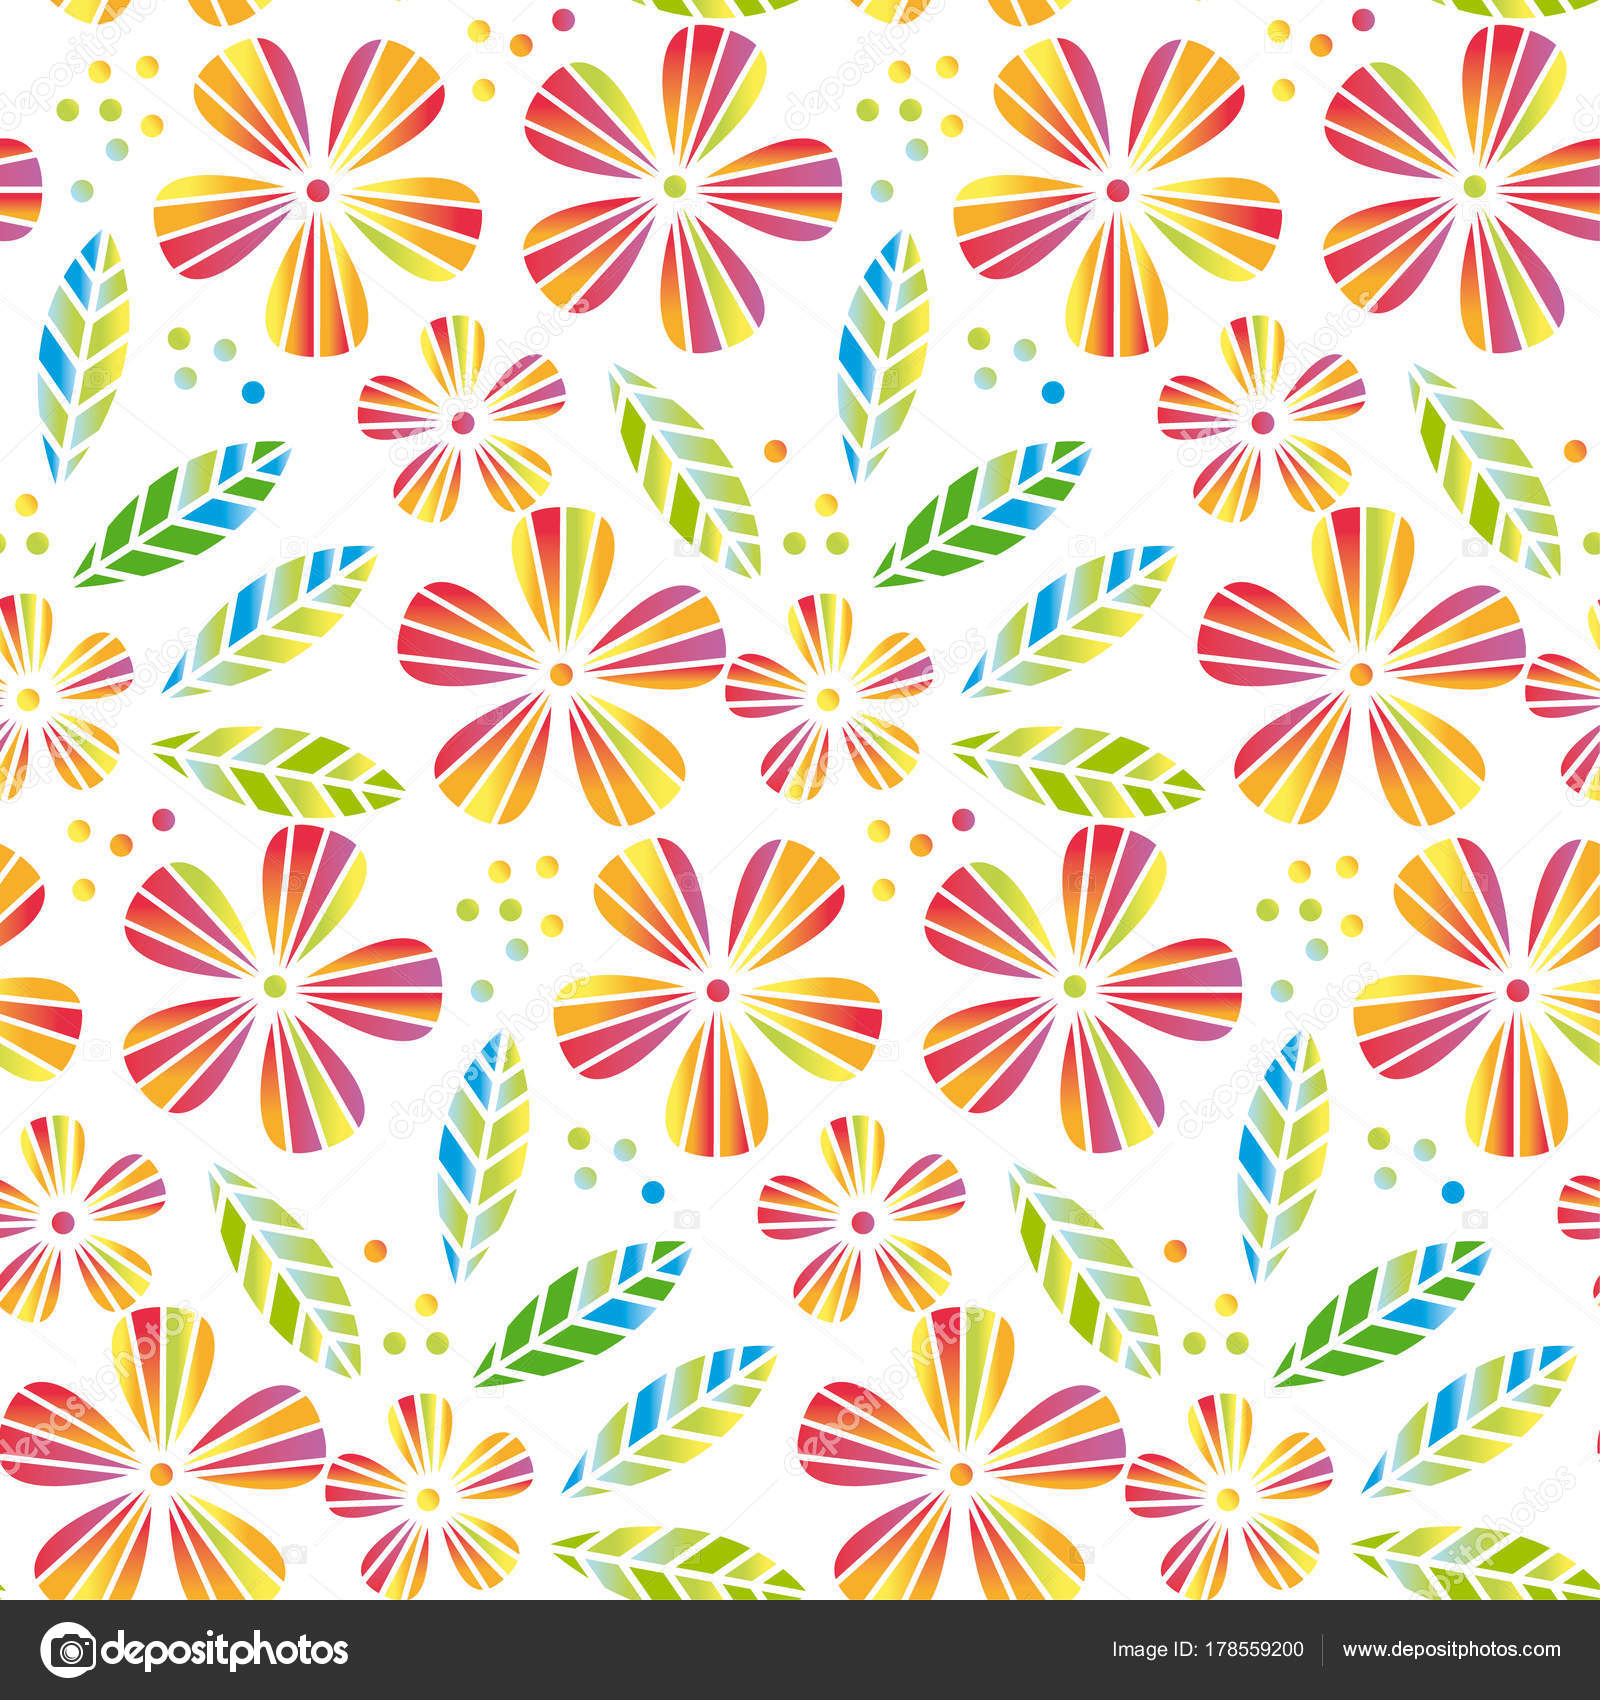 Tropical flowers and leaves simple and decorative vector seamless tropical flowers and leaves simple and decorative vector seamless element for surface design wrapping paper mightylinksfo